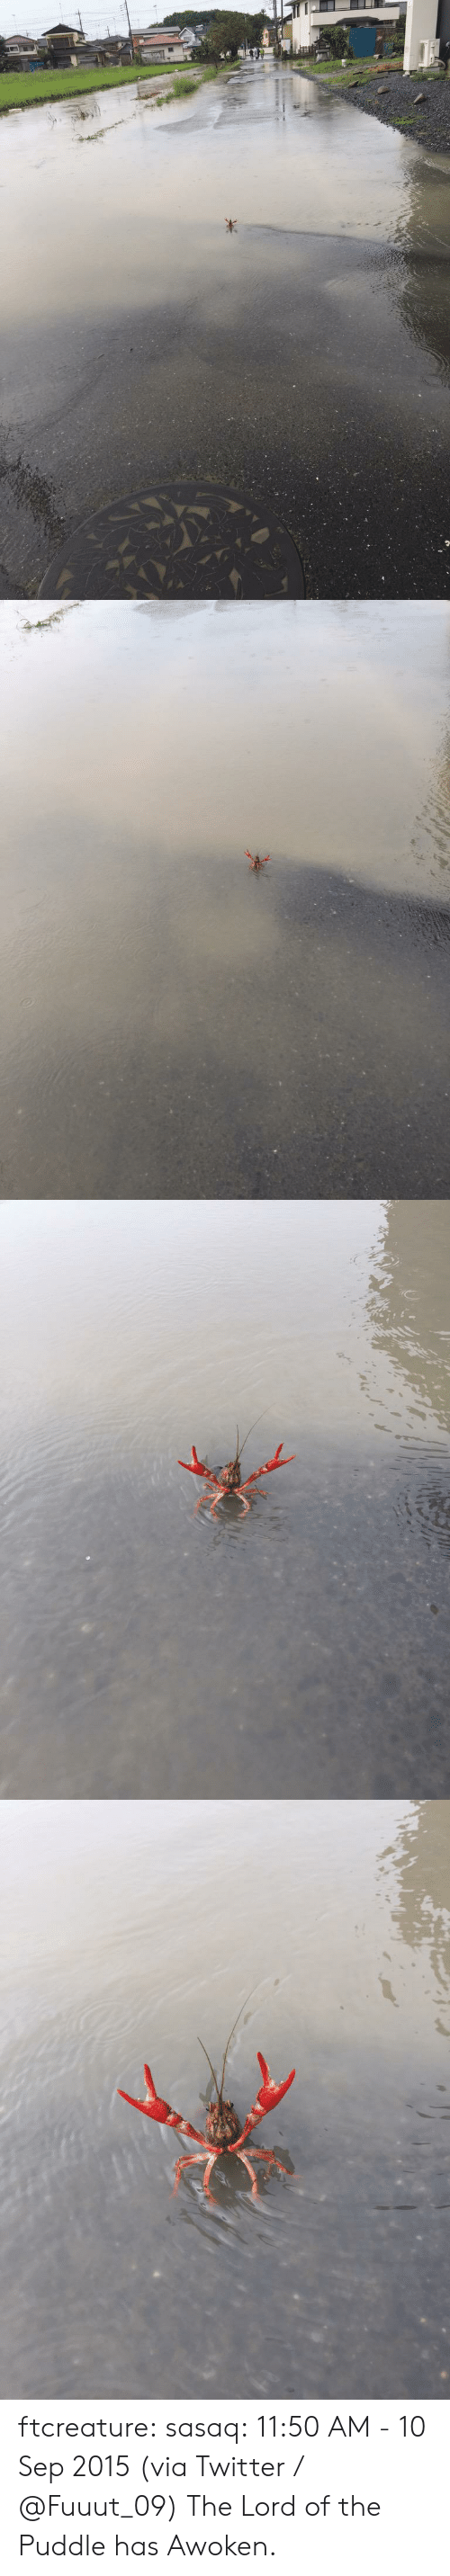 Target, Tumblr, and Twitter: ftcreature:  sasaq:  11:50 AM - 10 Sep 2015 (via Twitter / ふ み な @Fuuut_09)    The Lord of the Puddle has Awoken.